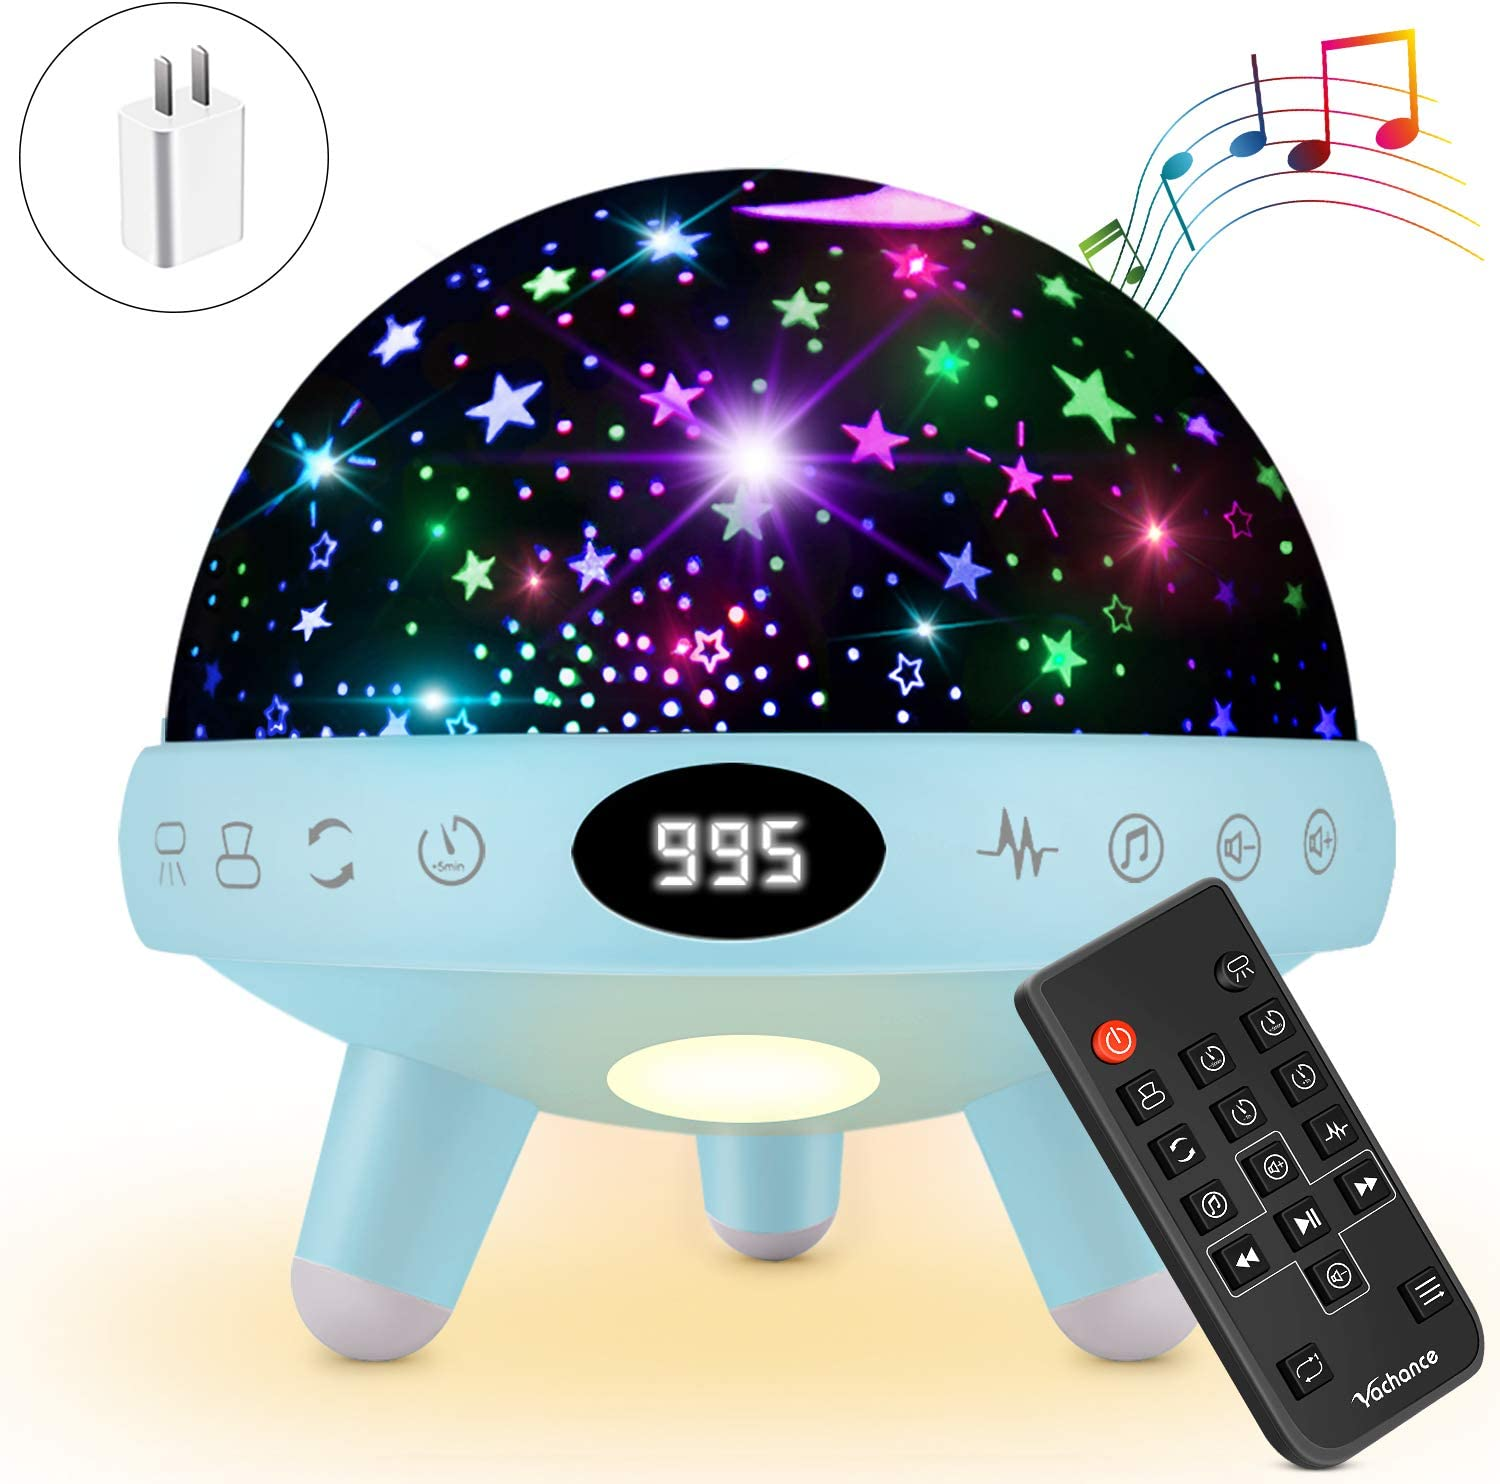 Yachance Baby Star Projector Night Light for Kids with Music White Noise Sound Machine Baby Sleep Soother Nursery Bedside Lamp 9 Natural Sounds 20 Lullabies Remote Control Adapter Timer (Blue)